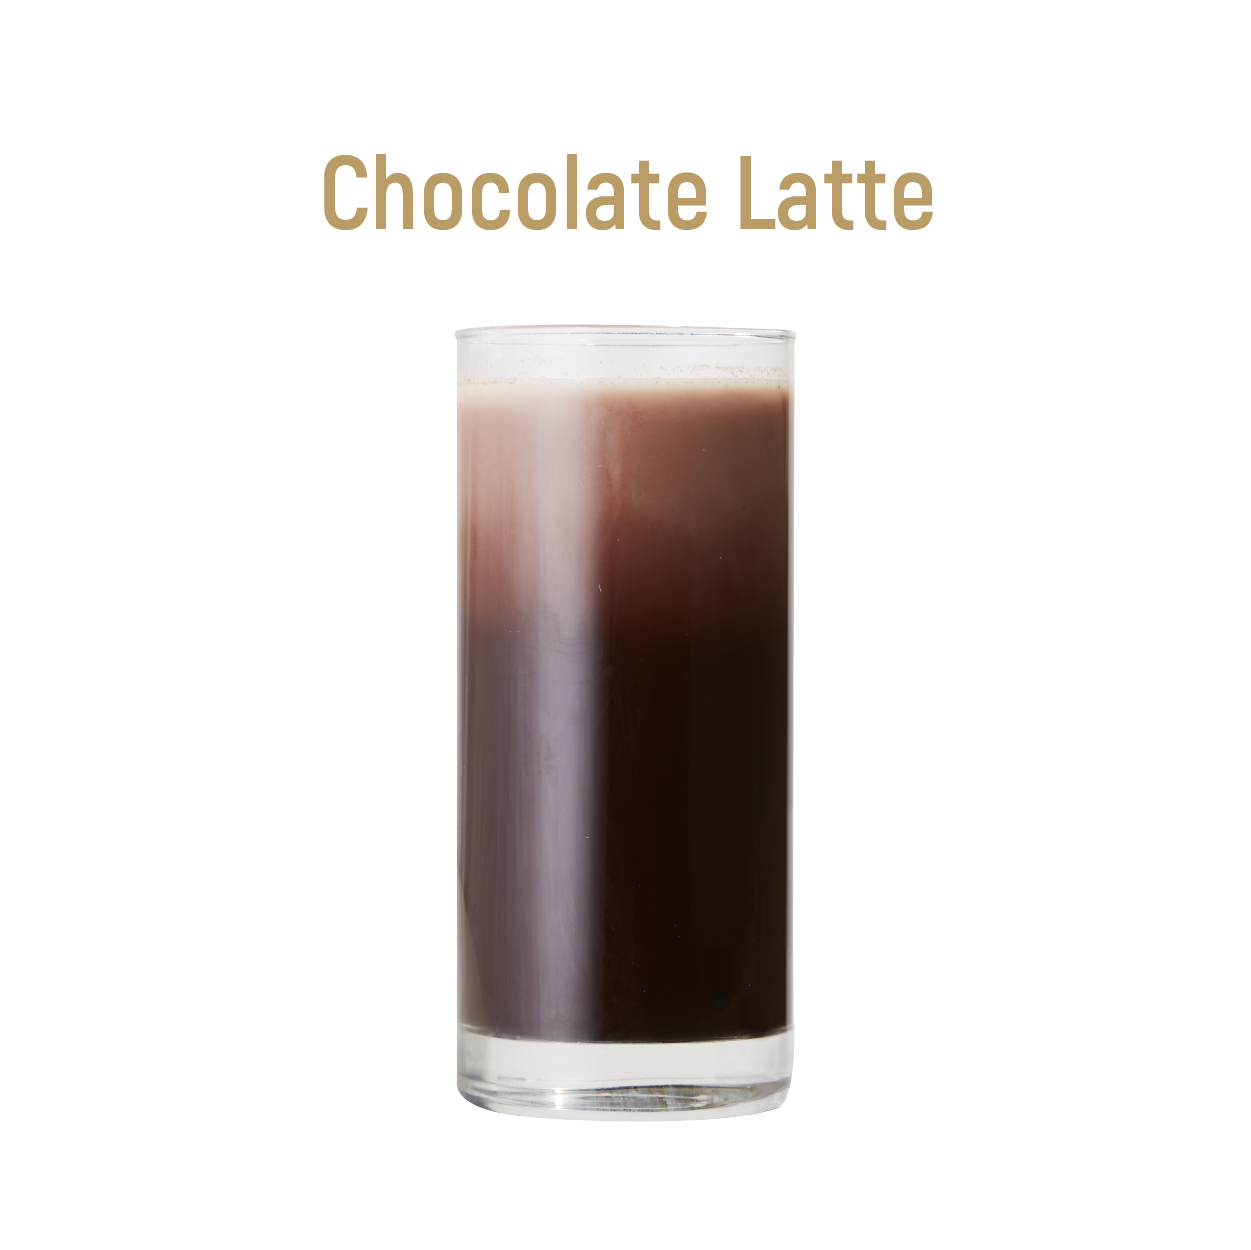 Latte copy_Chocolate Latte.png